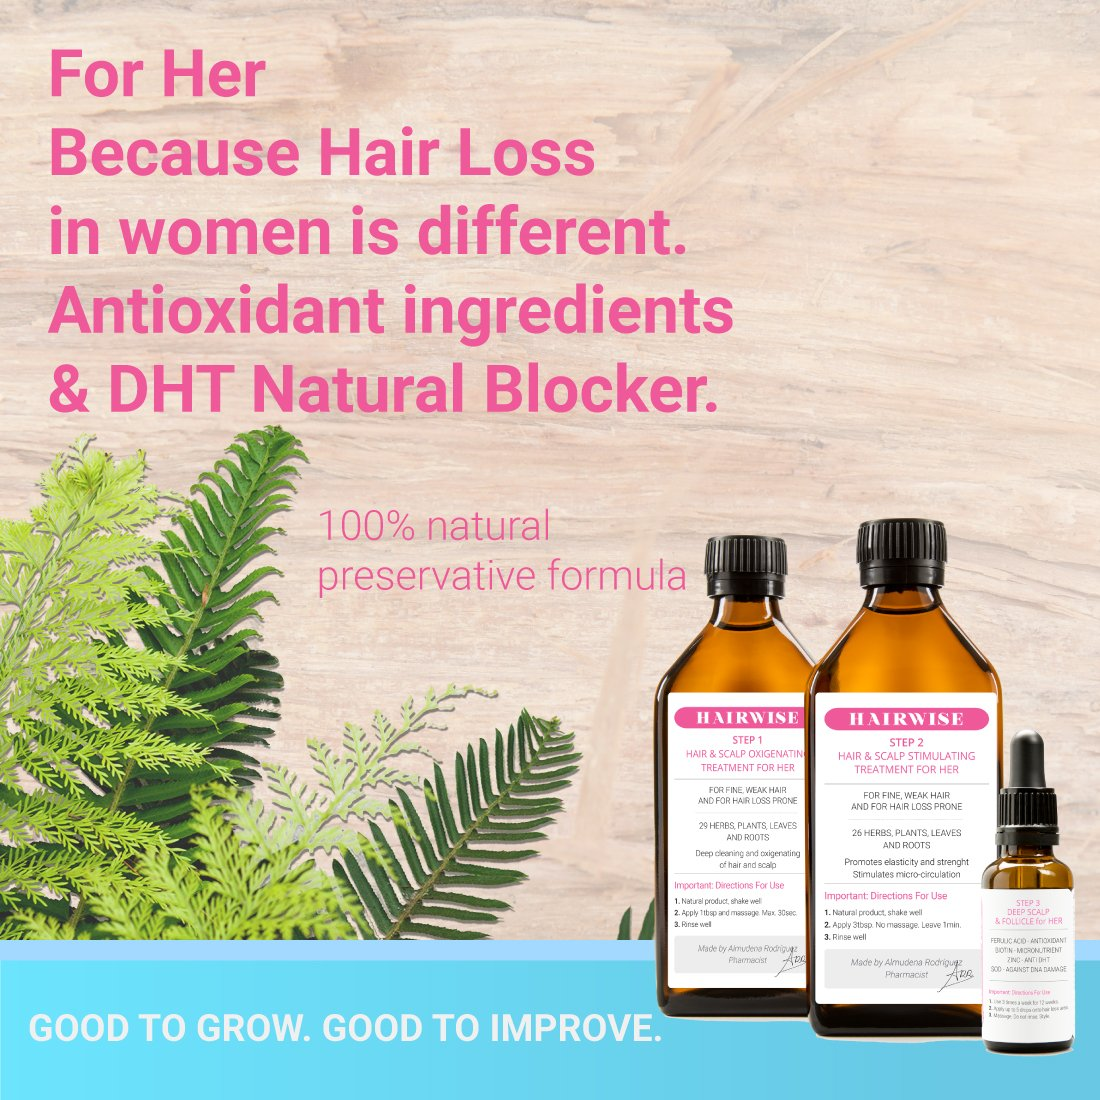 100% Medicinal Plants Based Hair Regrowth Treatment for Her - Step 1 Detox, Step 2 Hair And Scalp Stimulating, 3 Deep Scalp & Follicle Treatment   HairWise only Hand Made Products.